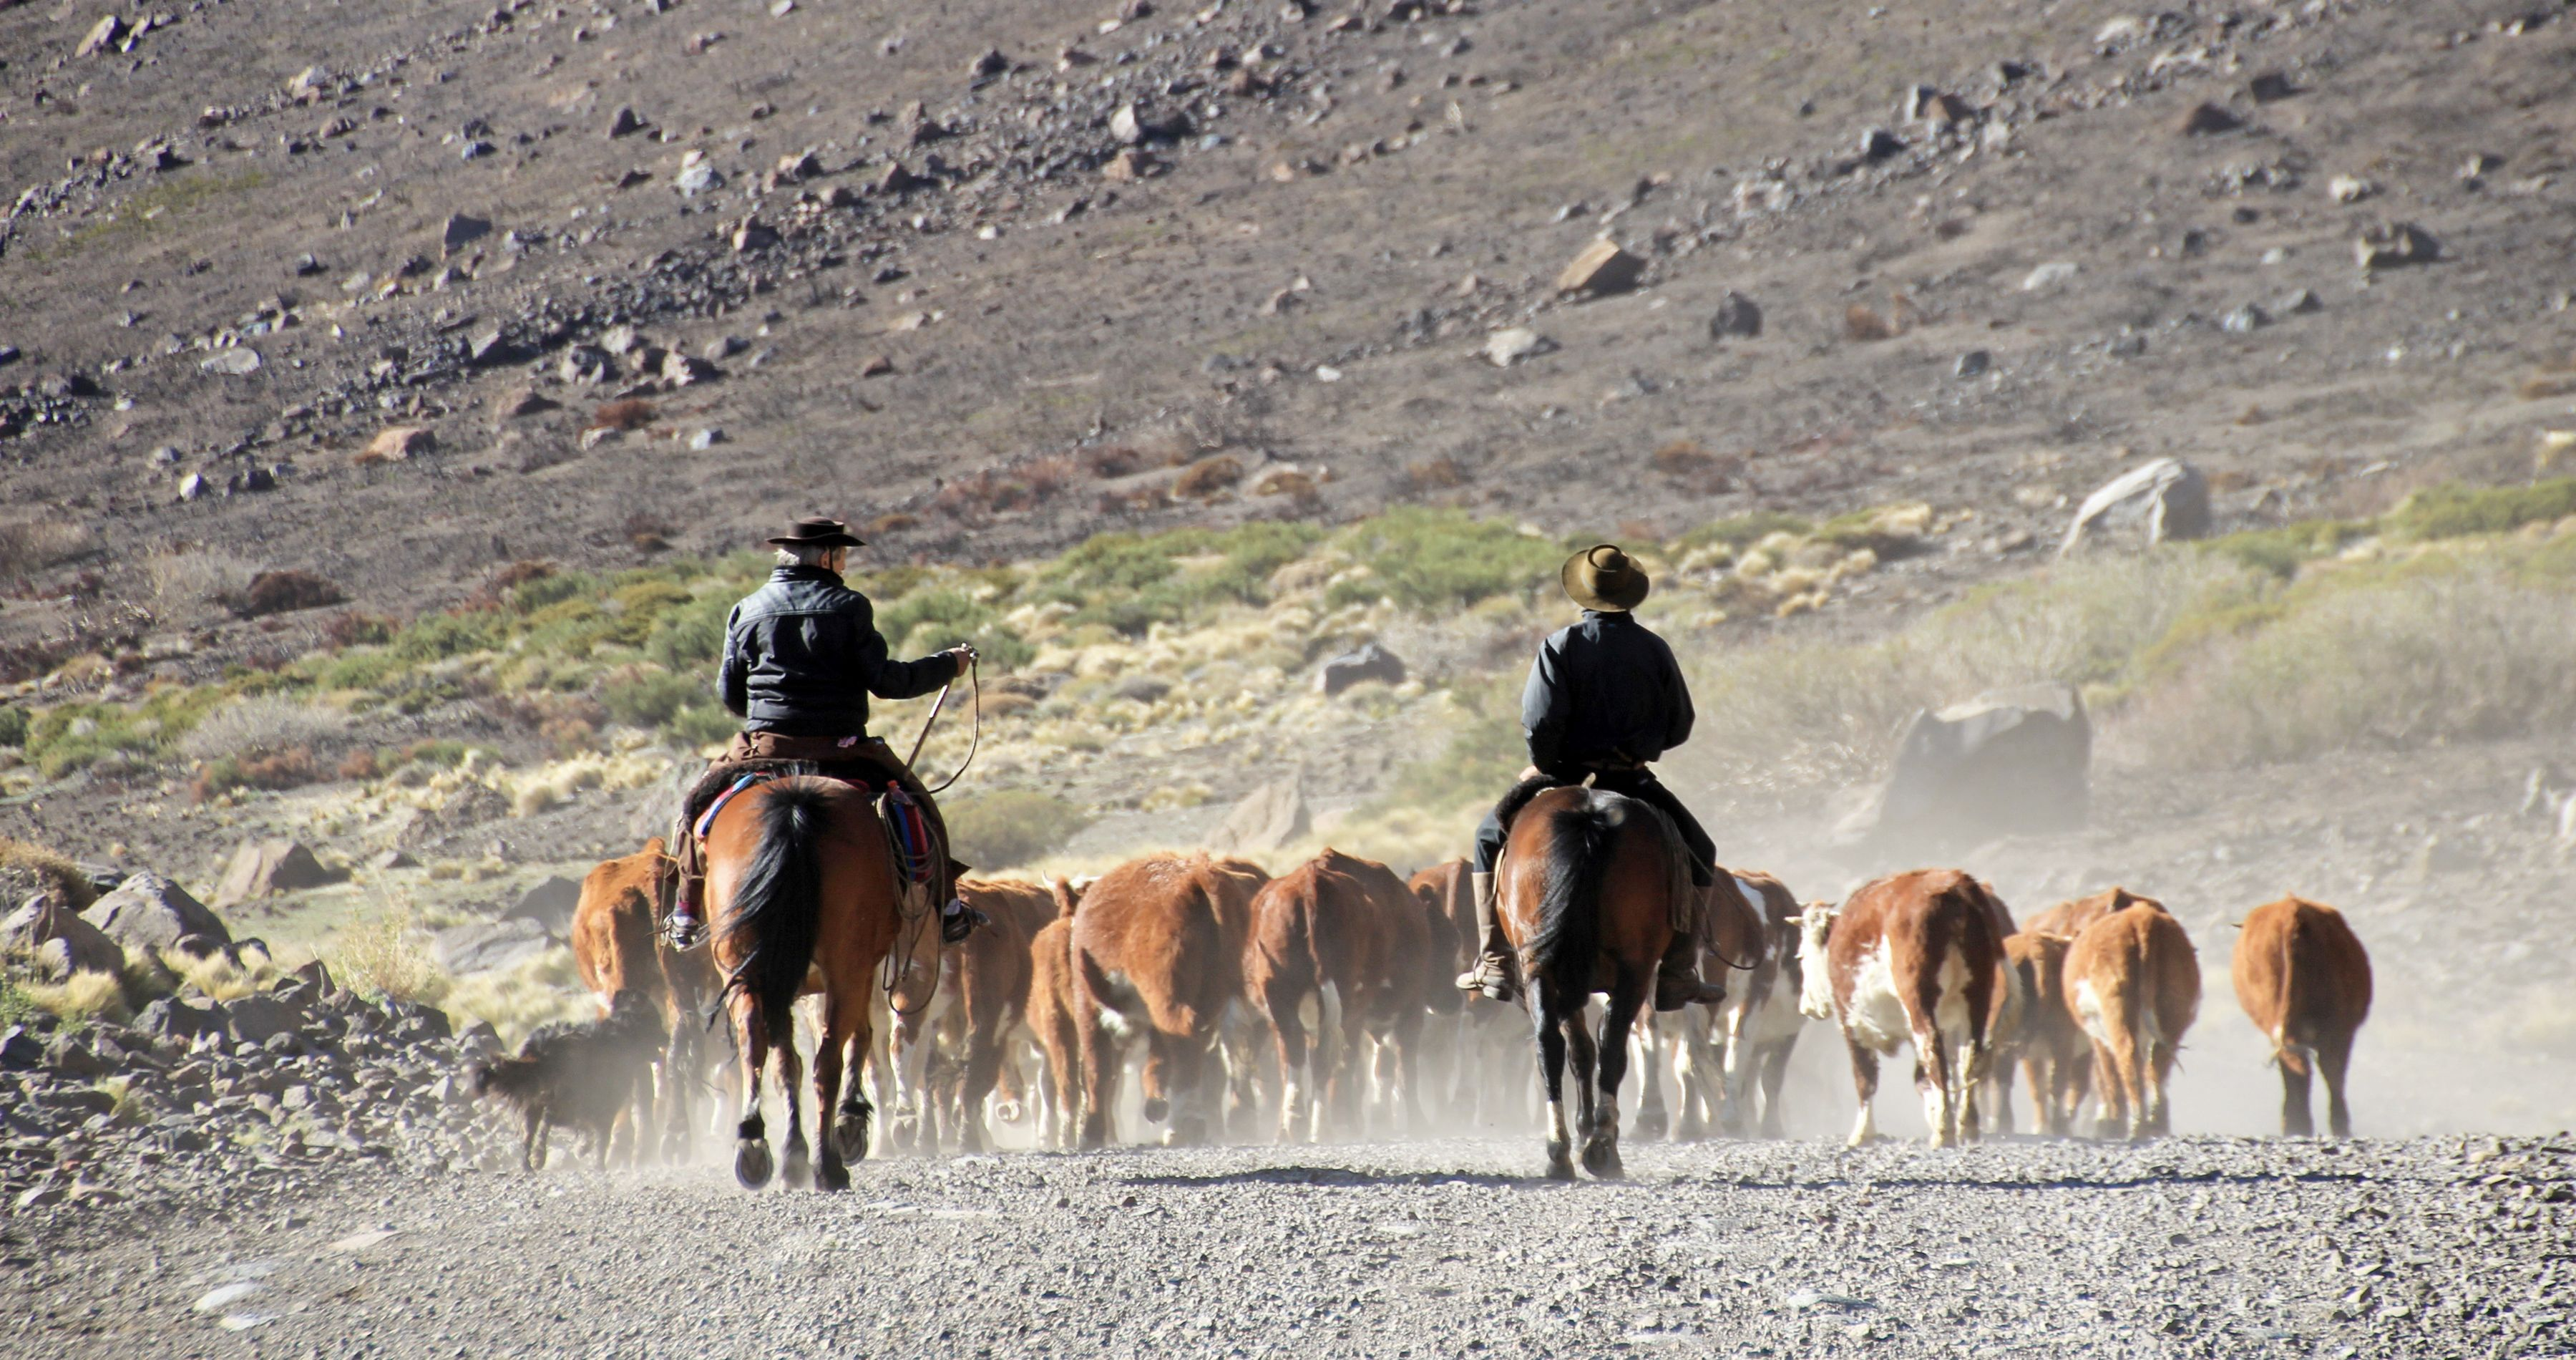 Gauchos and herd of cows, Patagonia, Argentina, South America